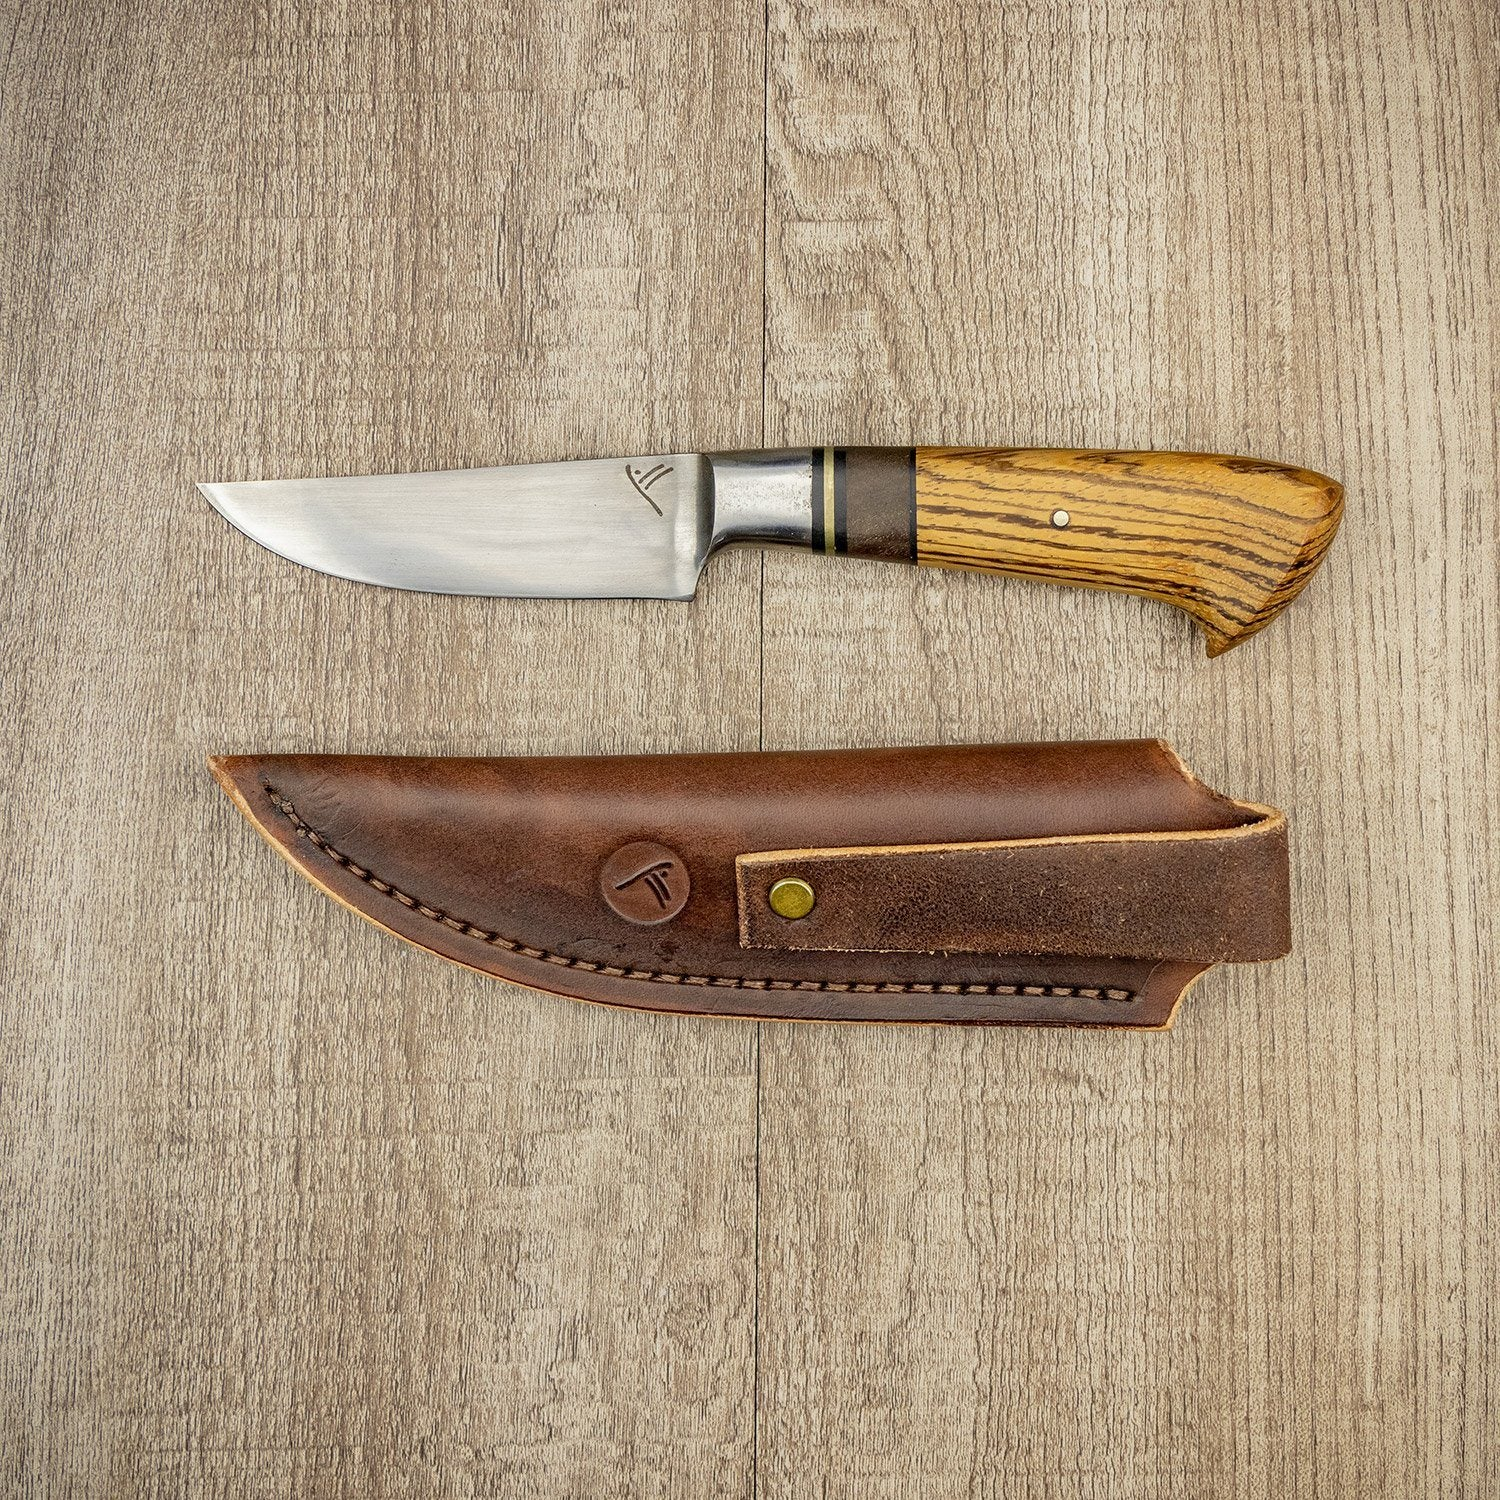 Chris Green Straight Back 90mm Fireside Knife